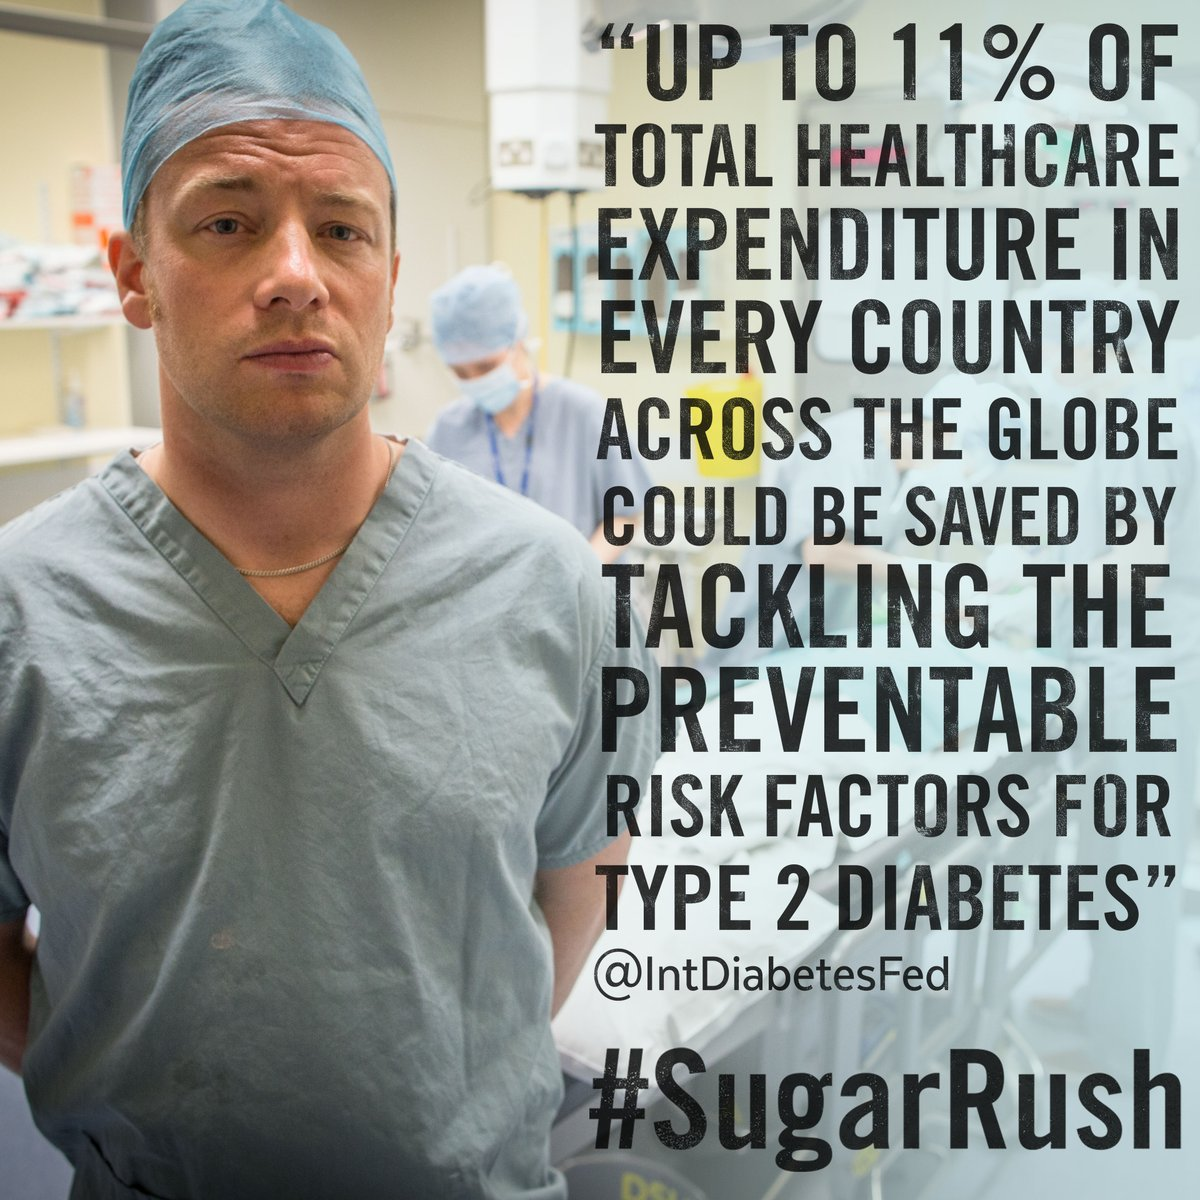 Tonight #SugarRush will be on your screens. USA tune in at 9pm ET on @pivot and help me make that change. https://t.co/vzHmv3wMg9